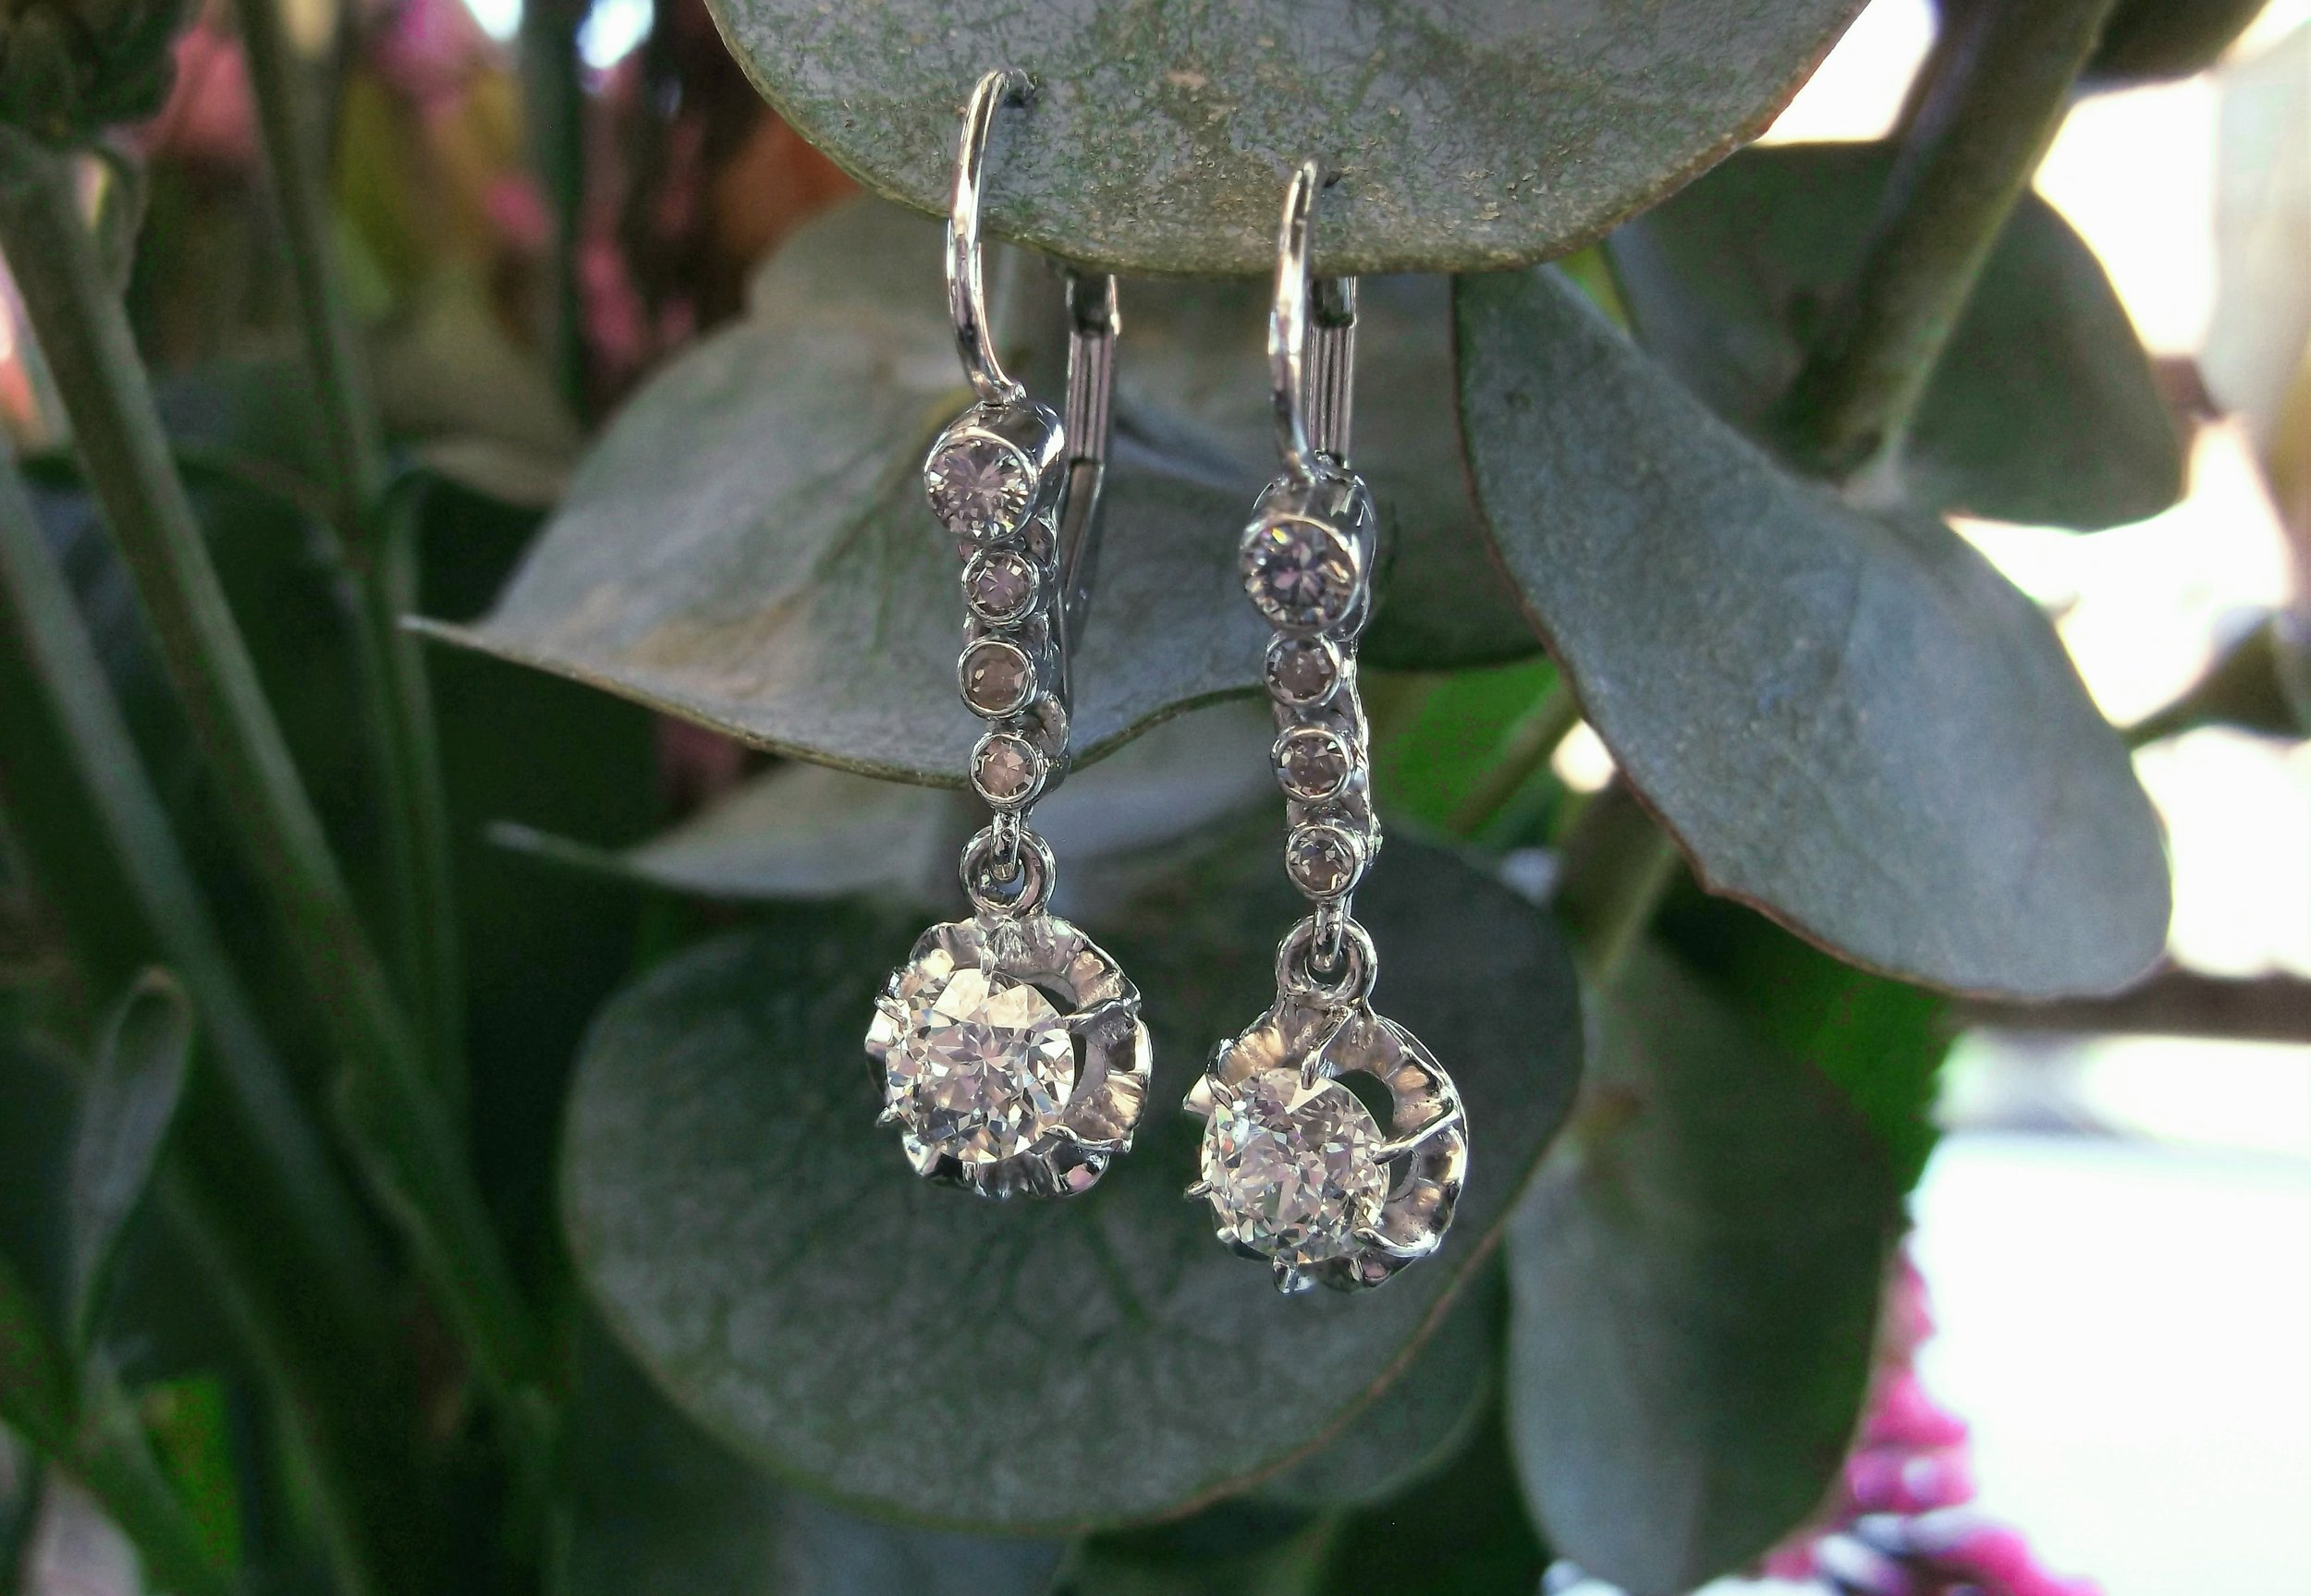 SOLD - A gorgeous addition to any wardrobe! From the 1920's, a pair of Old European cut diamond earrings with 1.00 carats total weight in diamonds set in white gold.